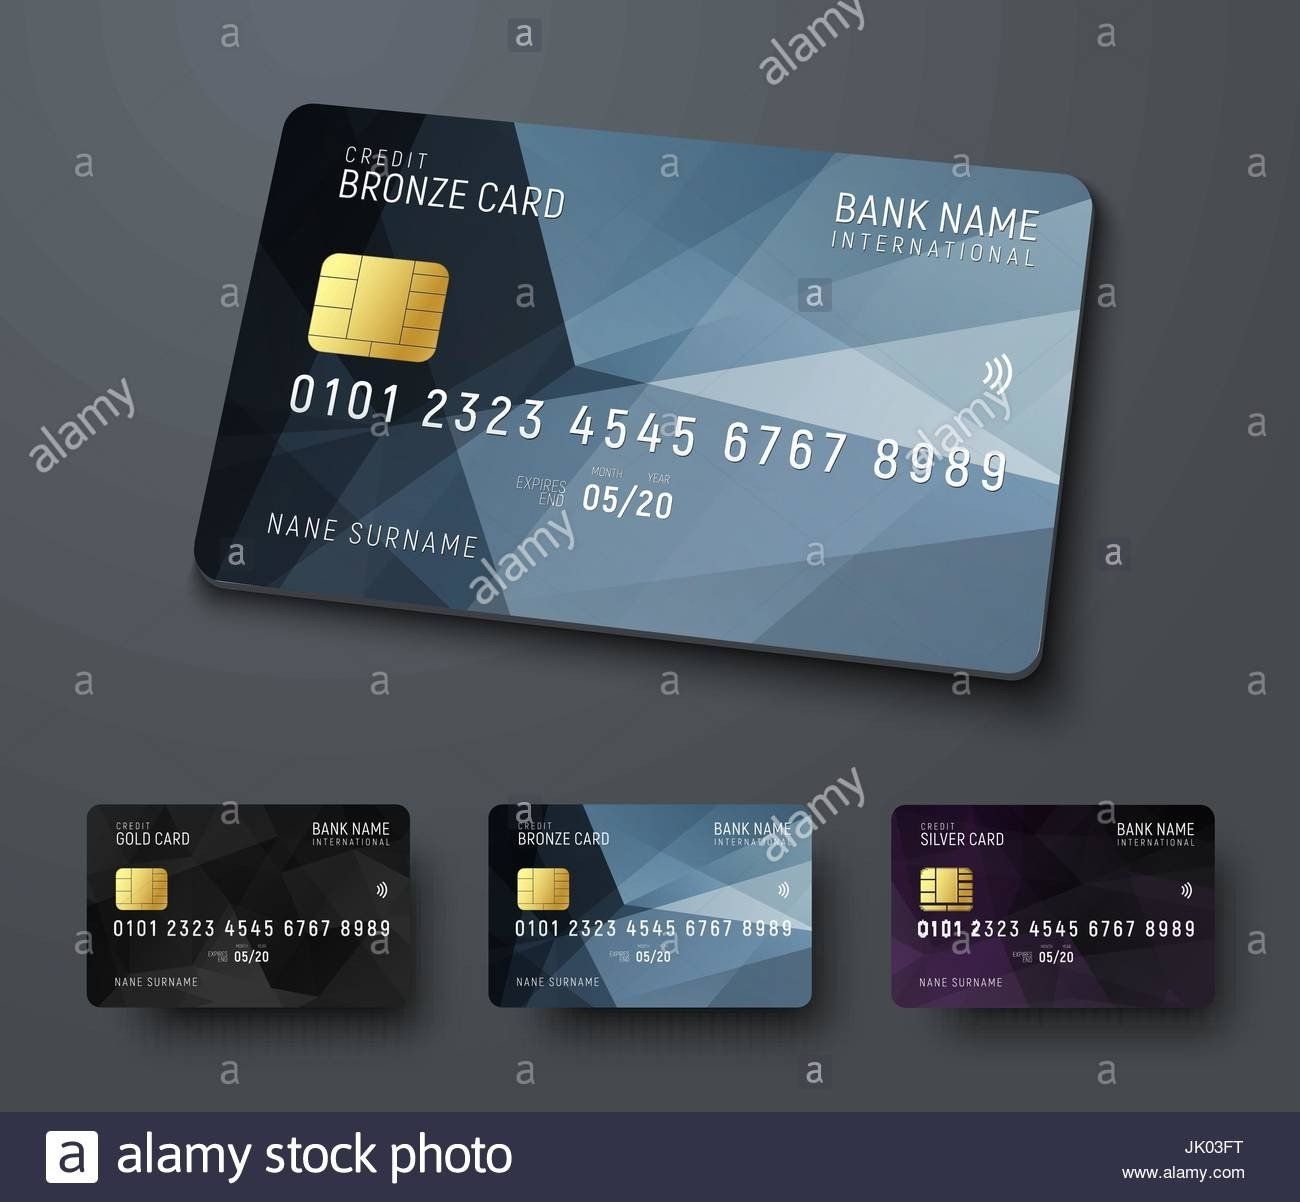 Cool debit card designs awesome templates of credit debit